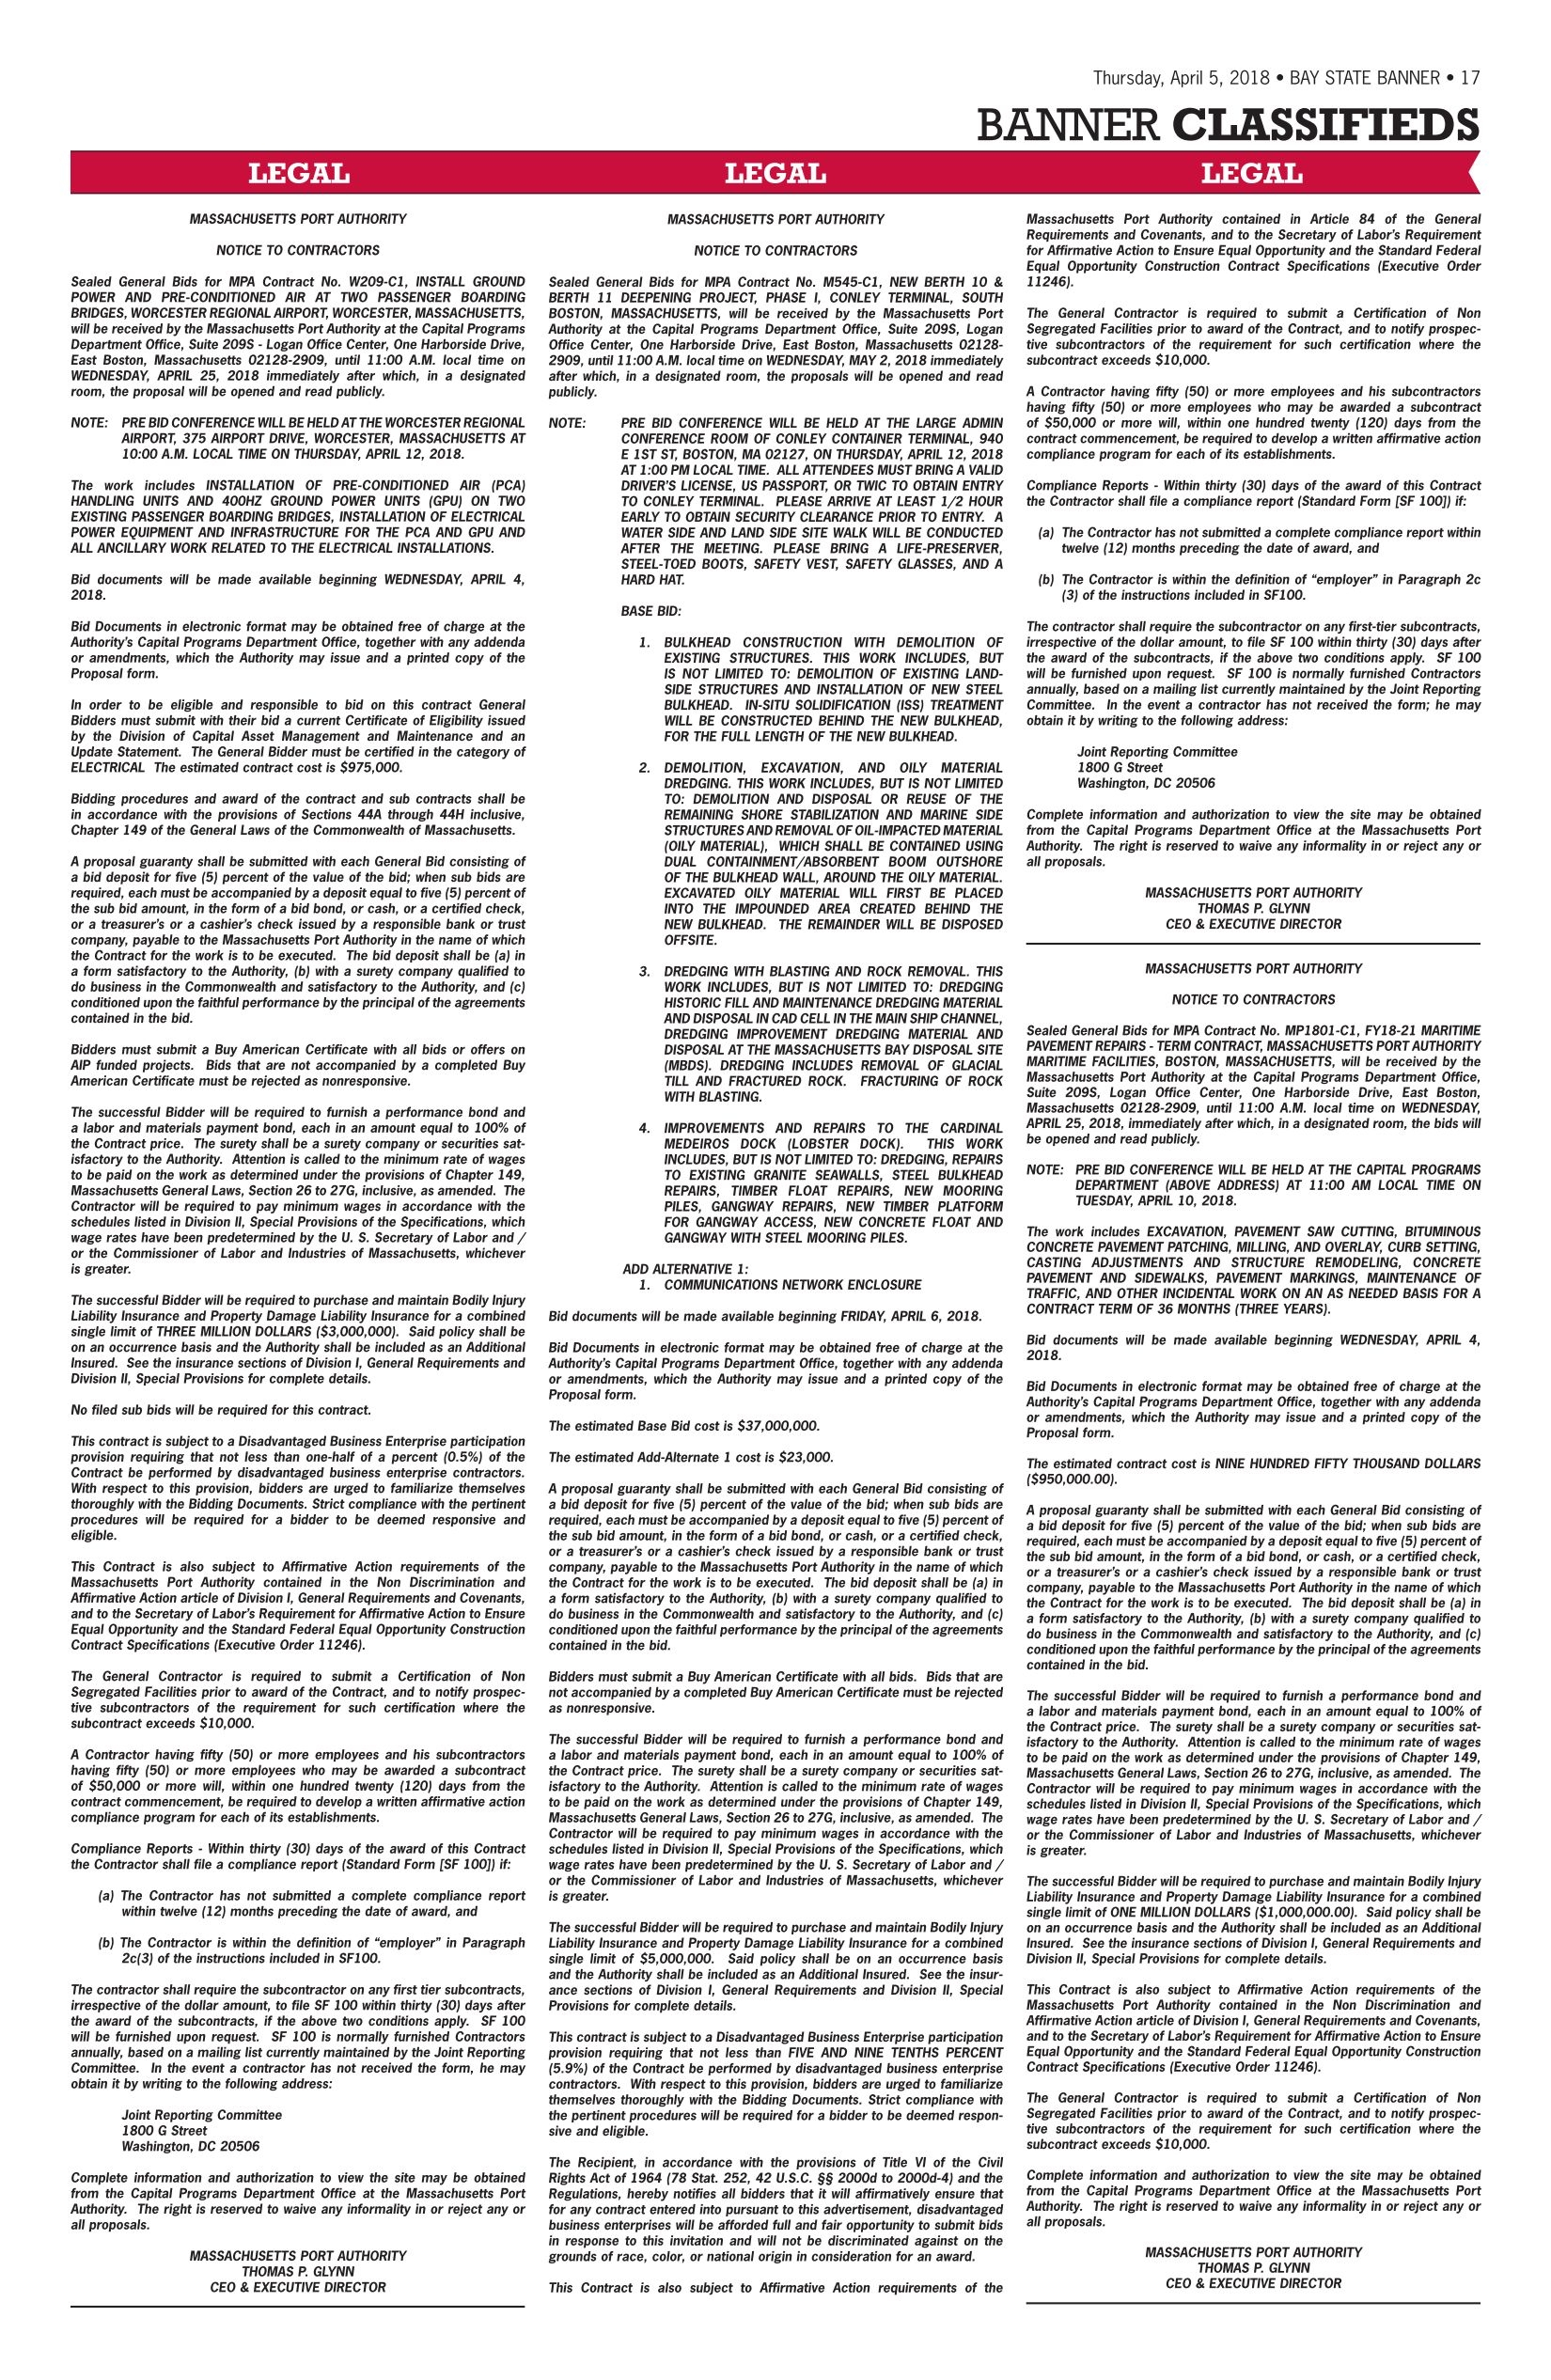 The Bay State Banner, 04-05-2018 - Page 17